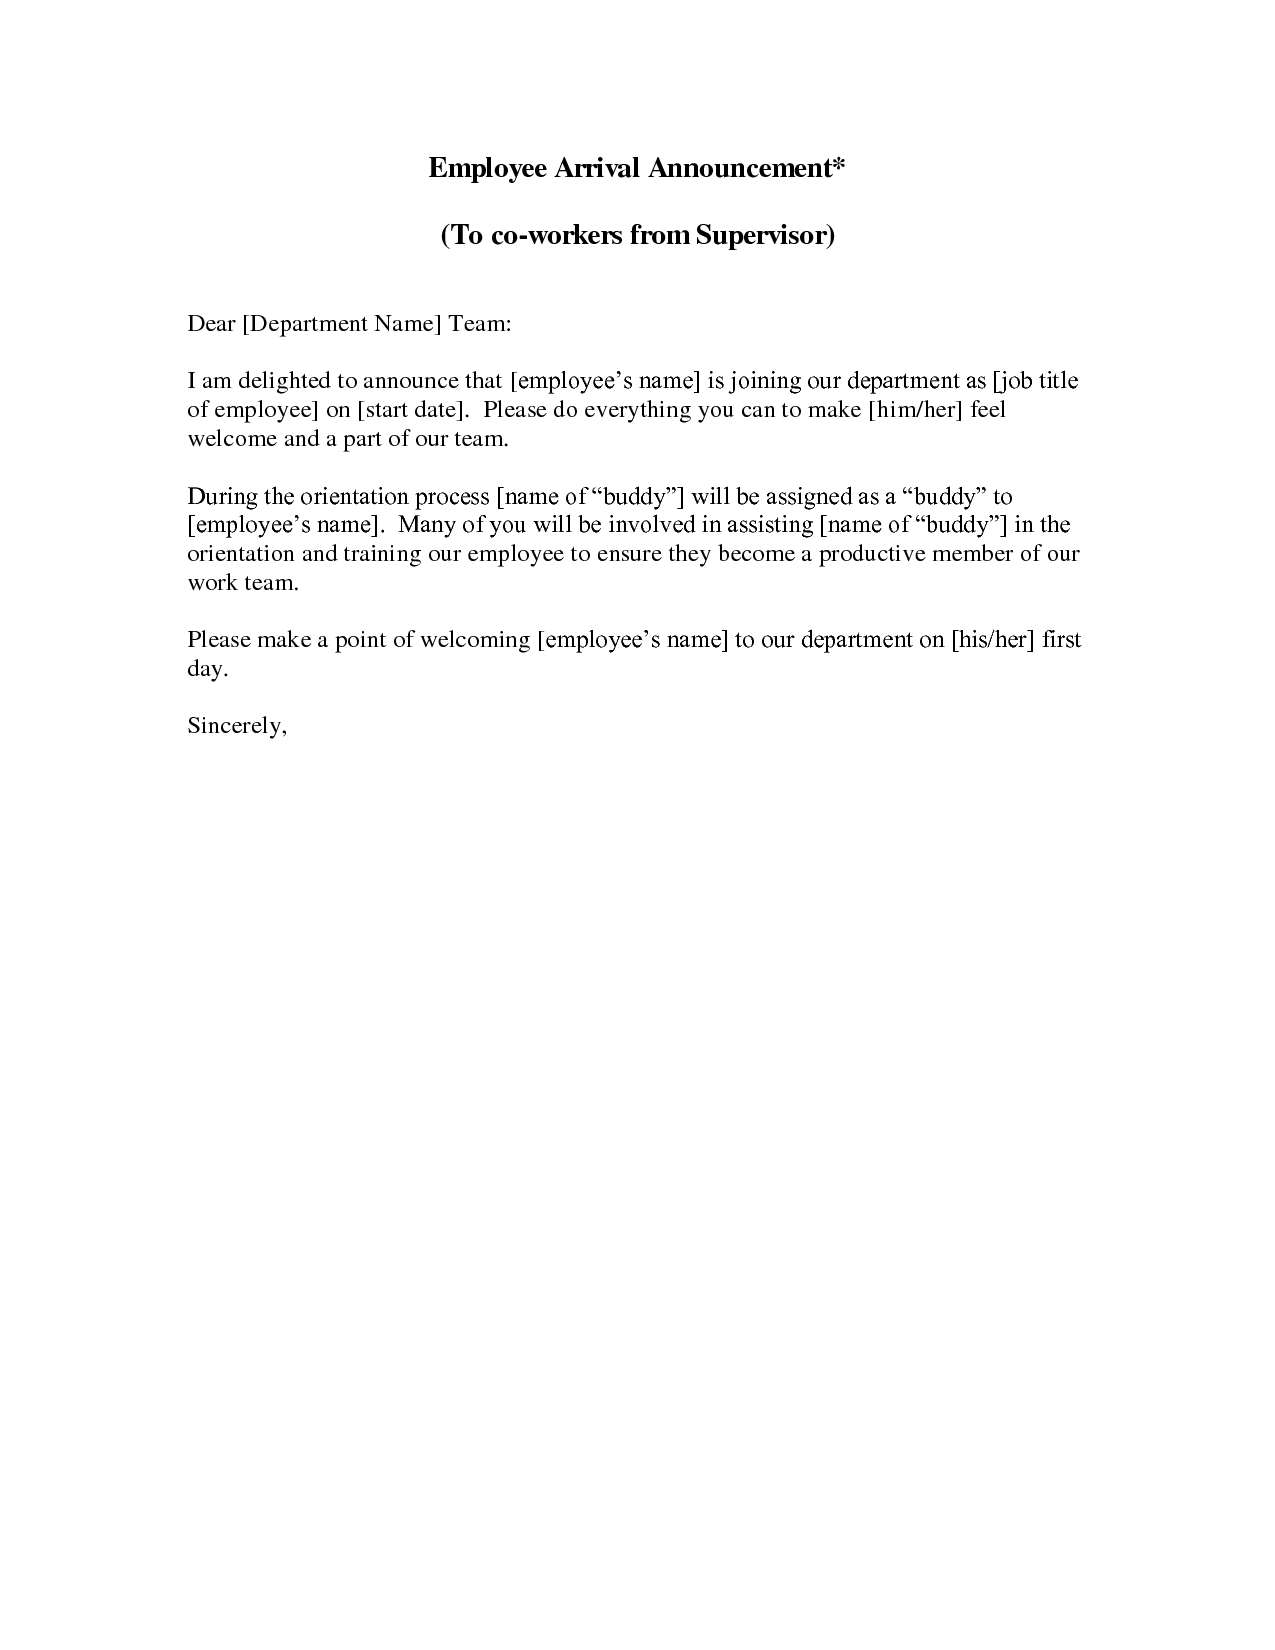 new employee announcement letter this sample new employee introduction letter welcomes your new staff member